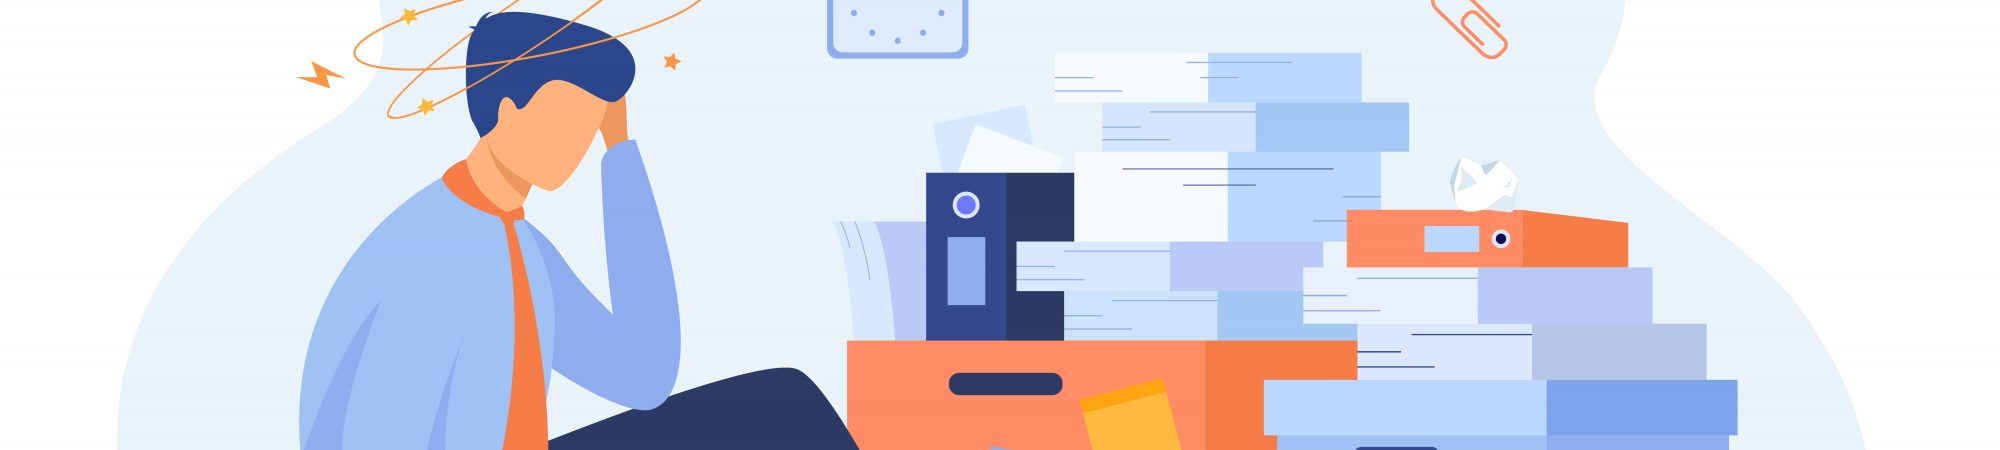 Tired man sitting on floor with paper document piles around flat vector illustration. Cartoon frustrated office employee doing paperwork. Business, fatigue and bureaucracy concept